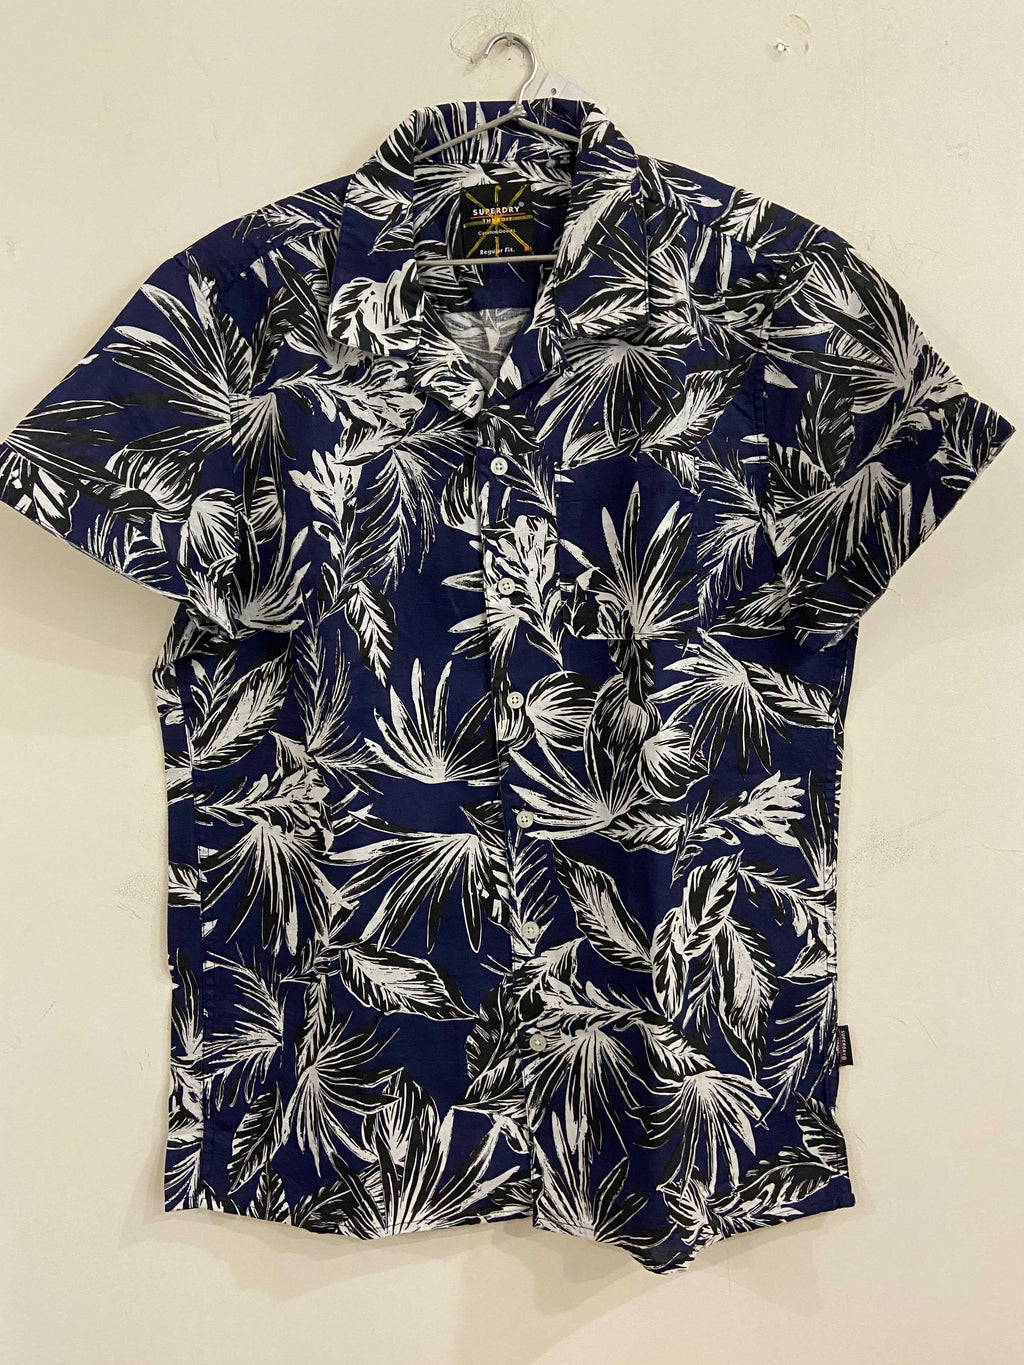 Superdry Navy Floral Shirt